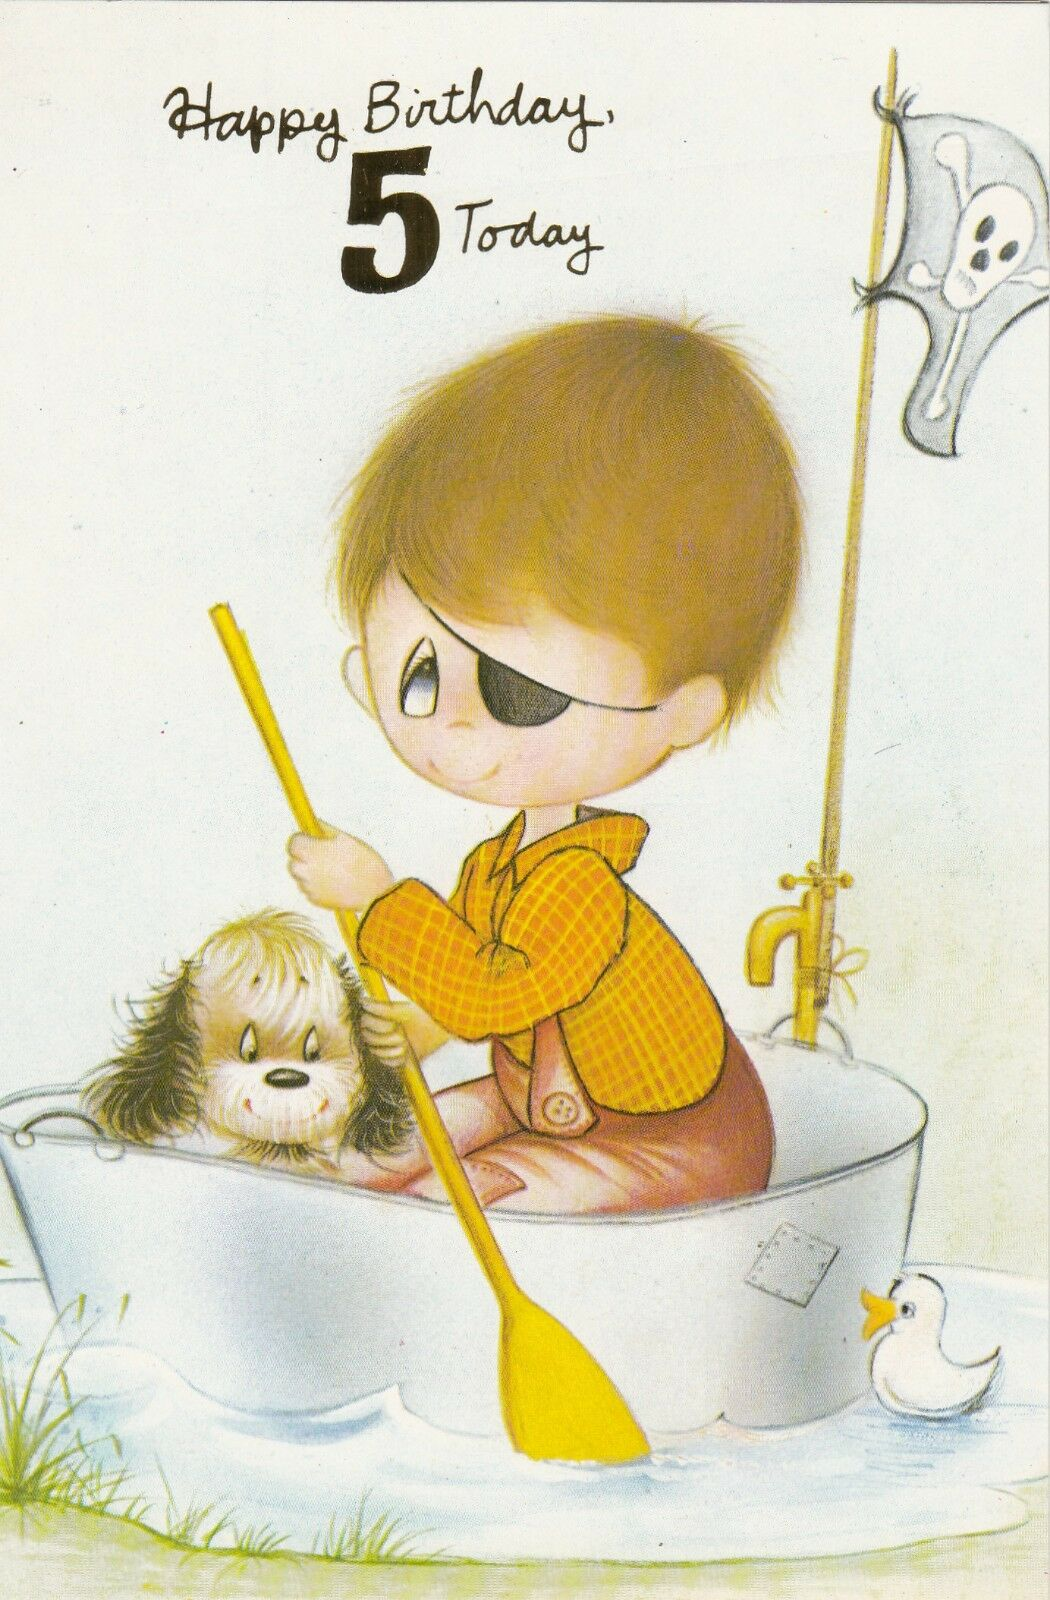 Vintage 1970s Happy 5th Birthday Greeting Card 5 Years Old Pirate